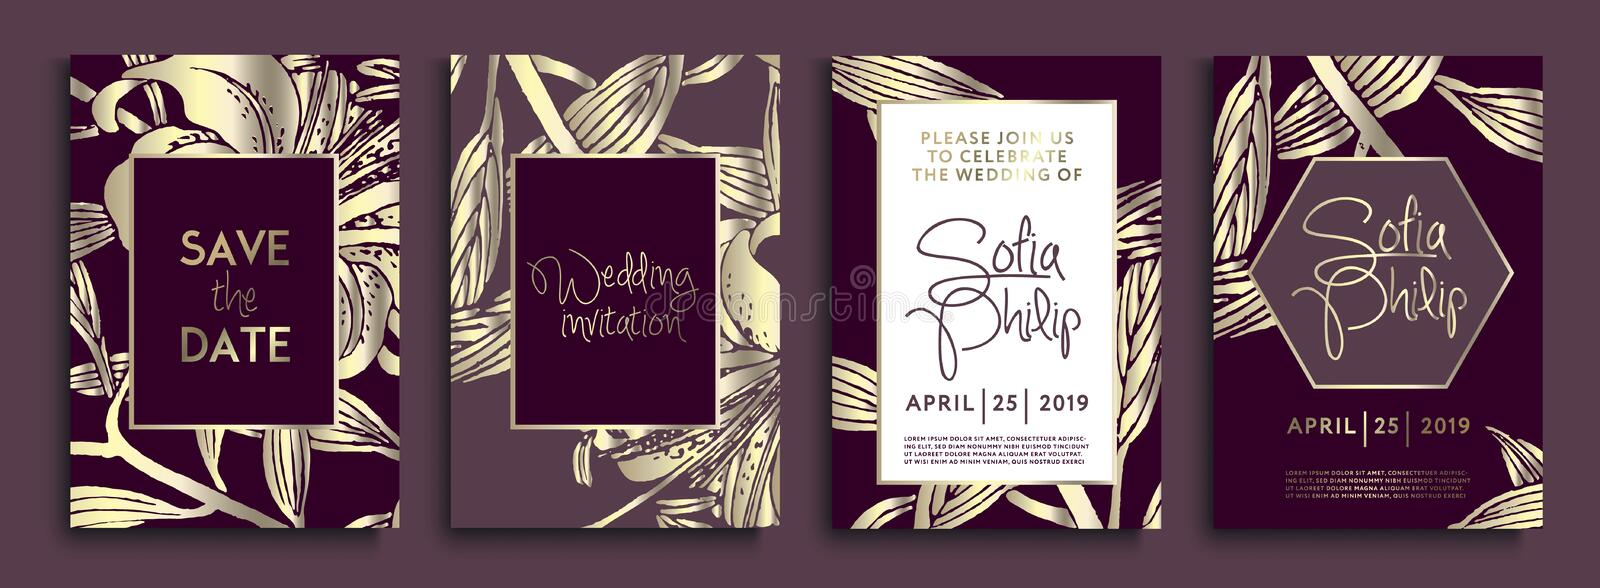 Wedding invitation with gold flowers and leaves on dark texture. luxury gold backgrounds, artistic covers design, colorful texture royalty free illustration